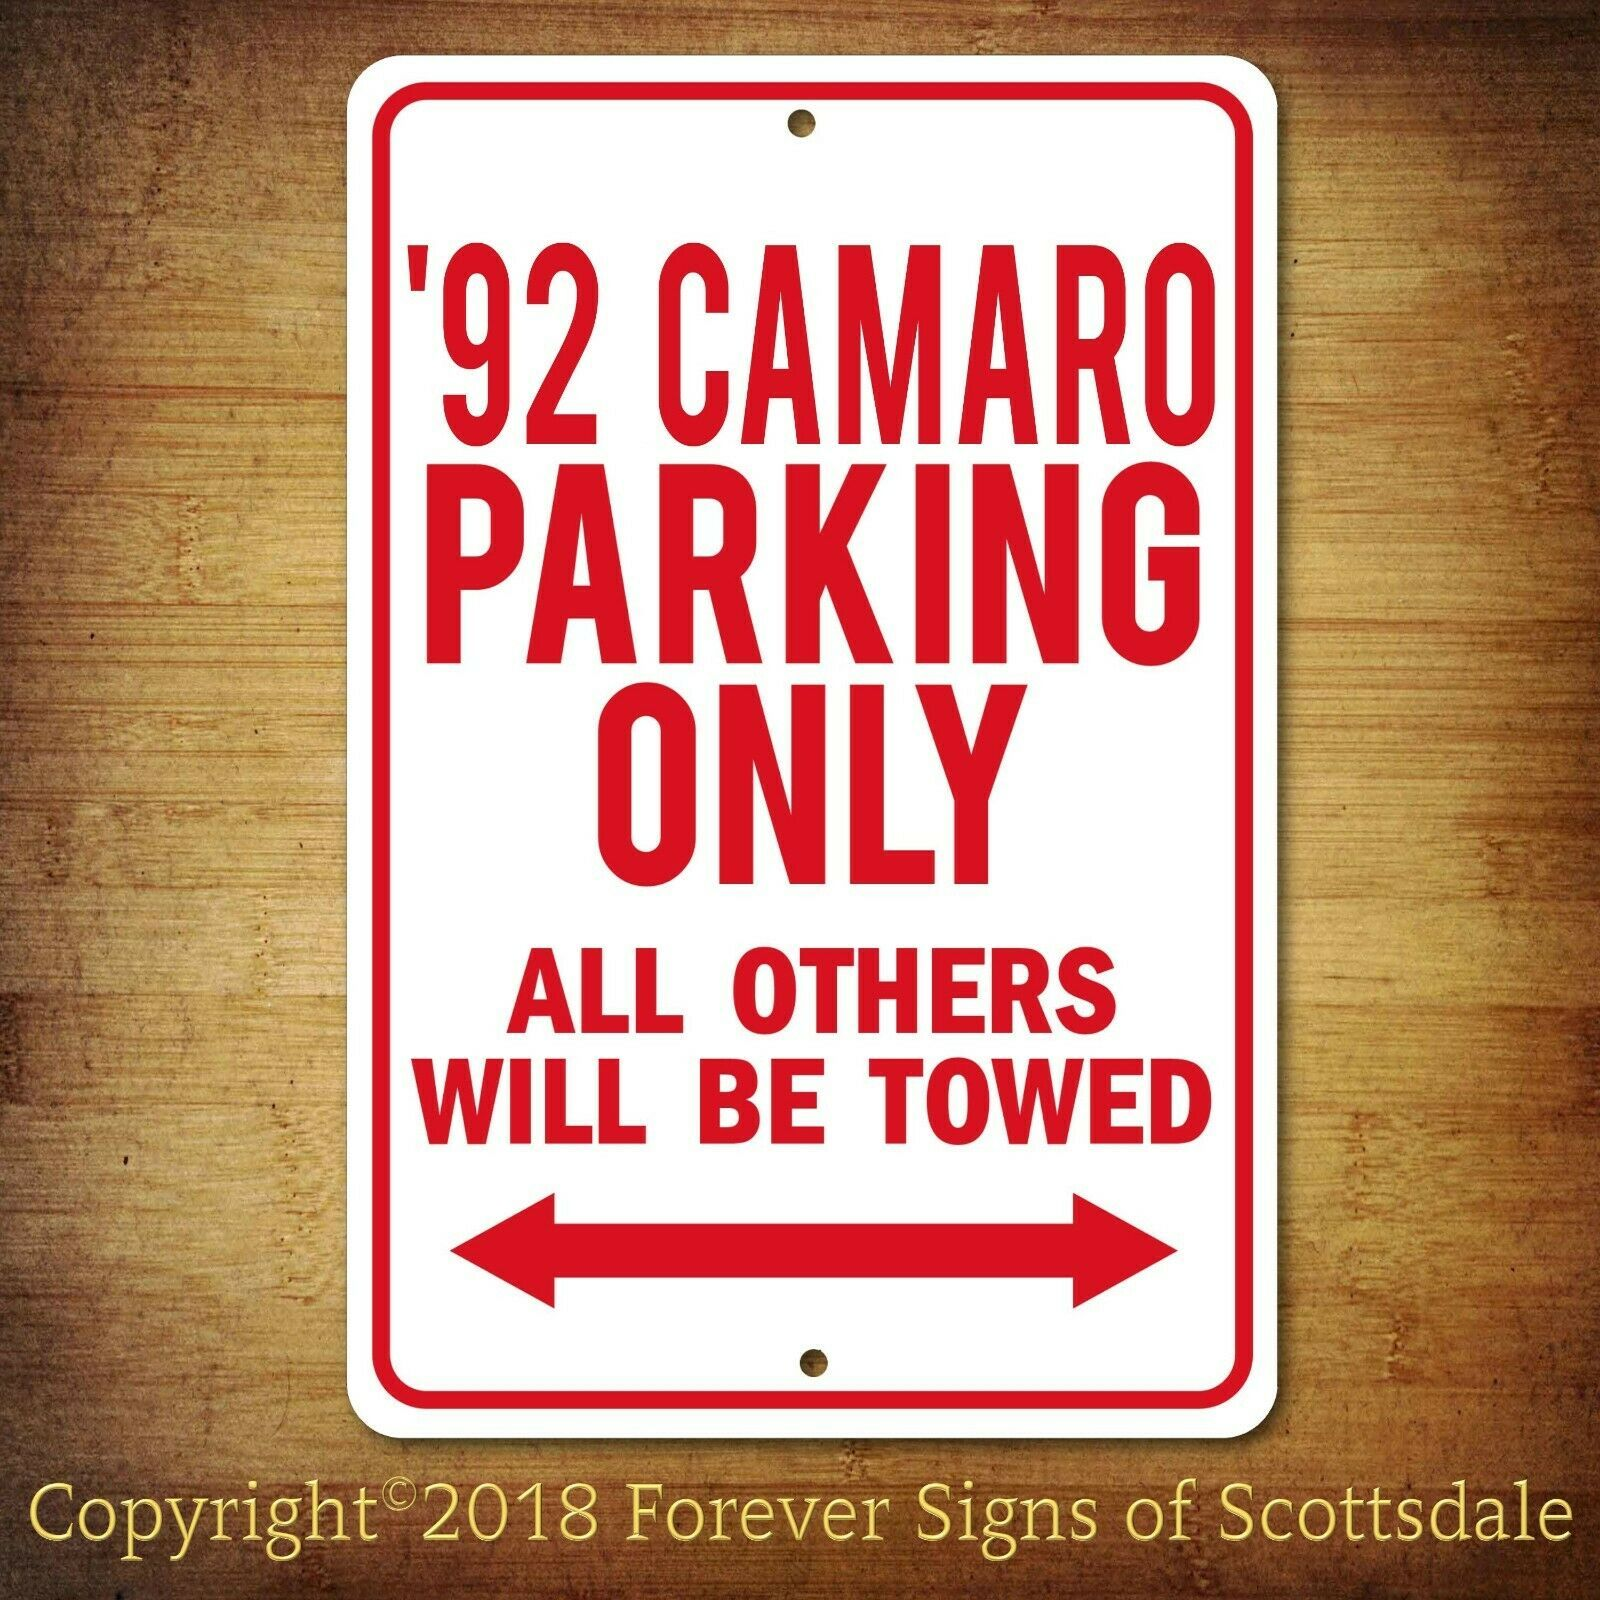 Primary image for 1992 Chevrolet Camaro Parking Only Security Aluminum Sign